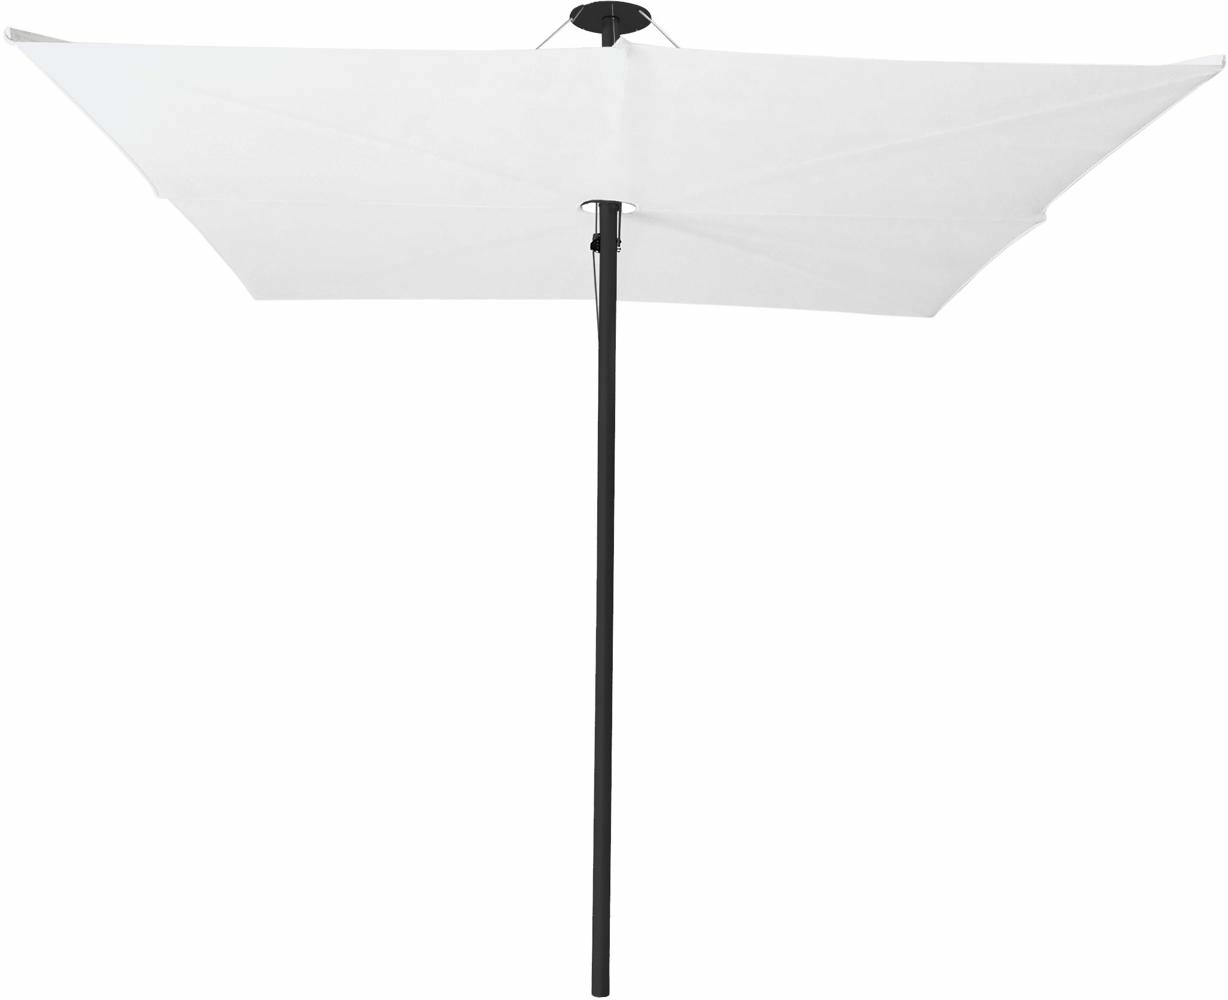 Infina center post umbrella, 2,5 m square, with frame in Dusk and Solidum Natural canopy.